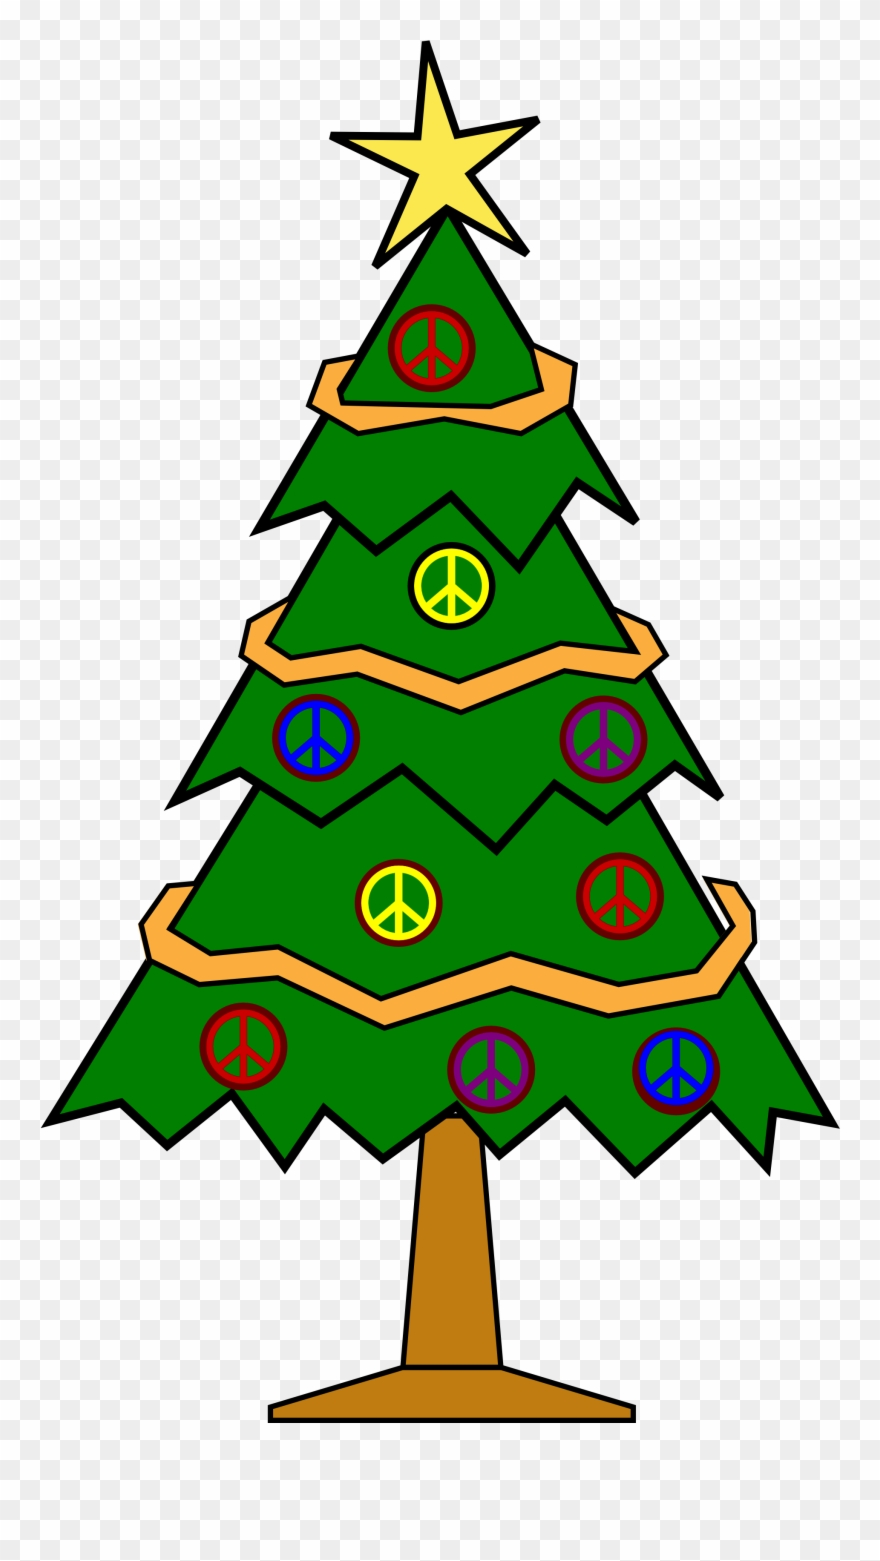 Clipart Transparent Stock Christmas Tree And Presents.